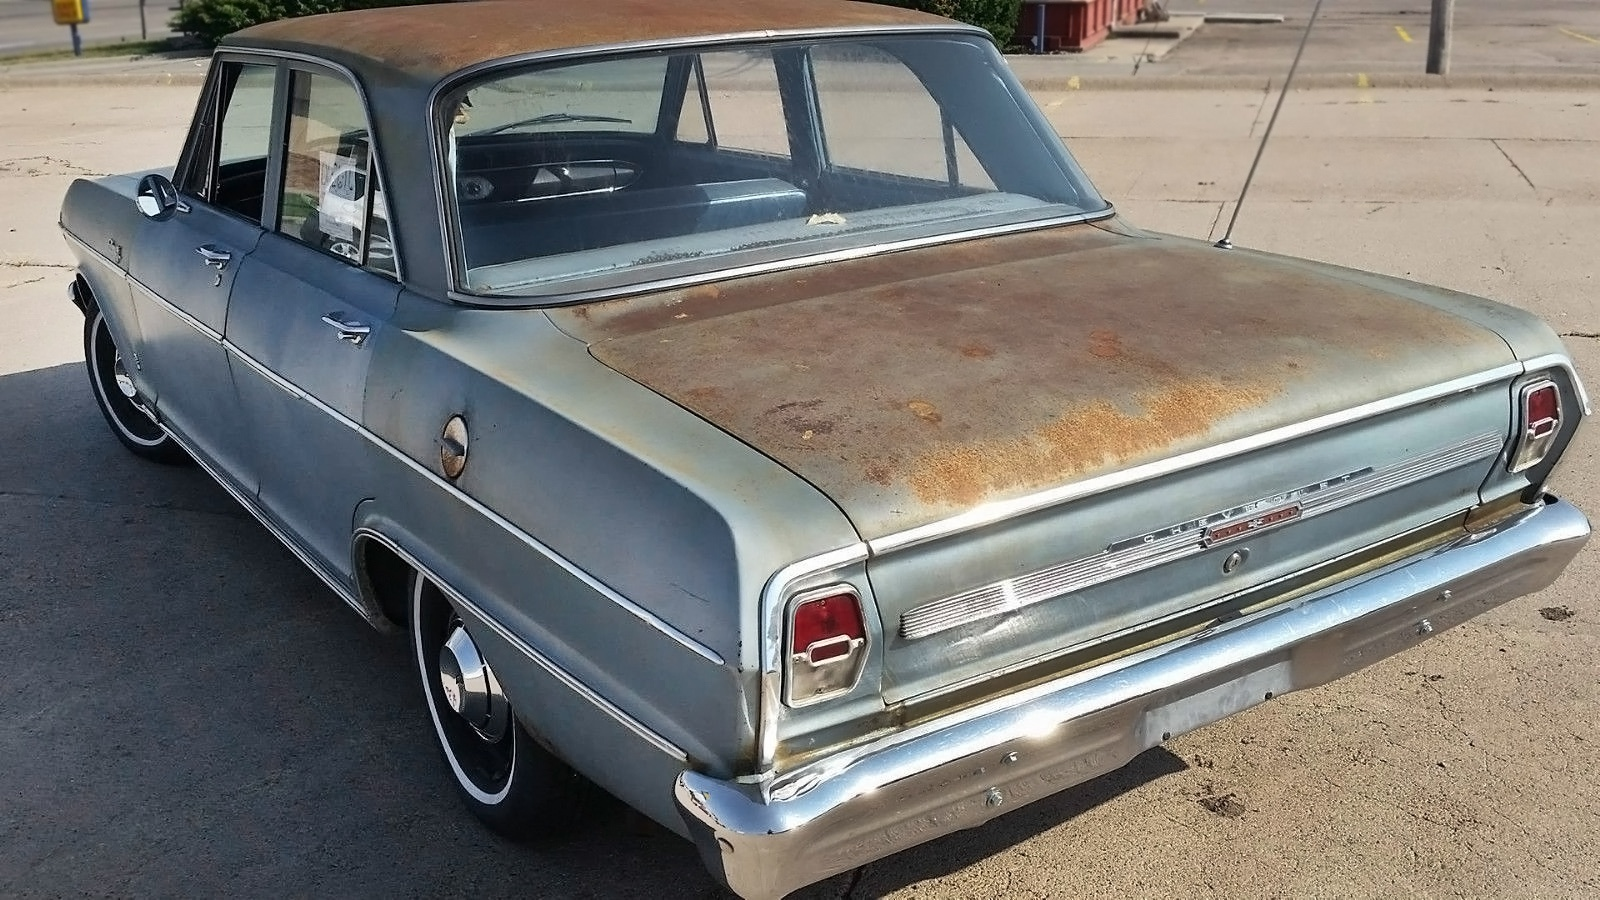 All Chevy chevy 2 2 : All Chevy » 1964 Chevy 2 - Old Chevy Photos Collection, All Makes ...